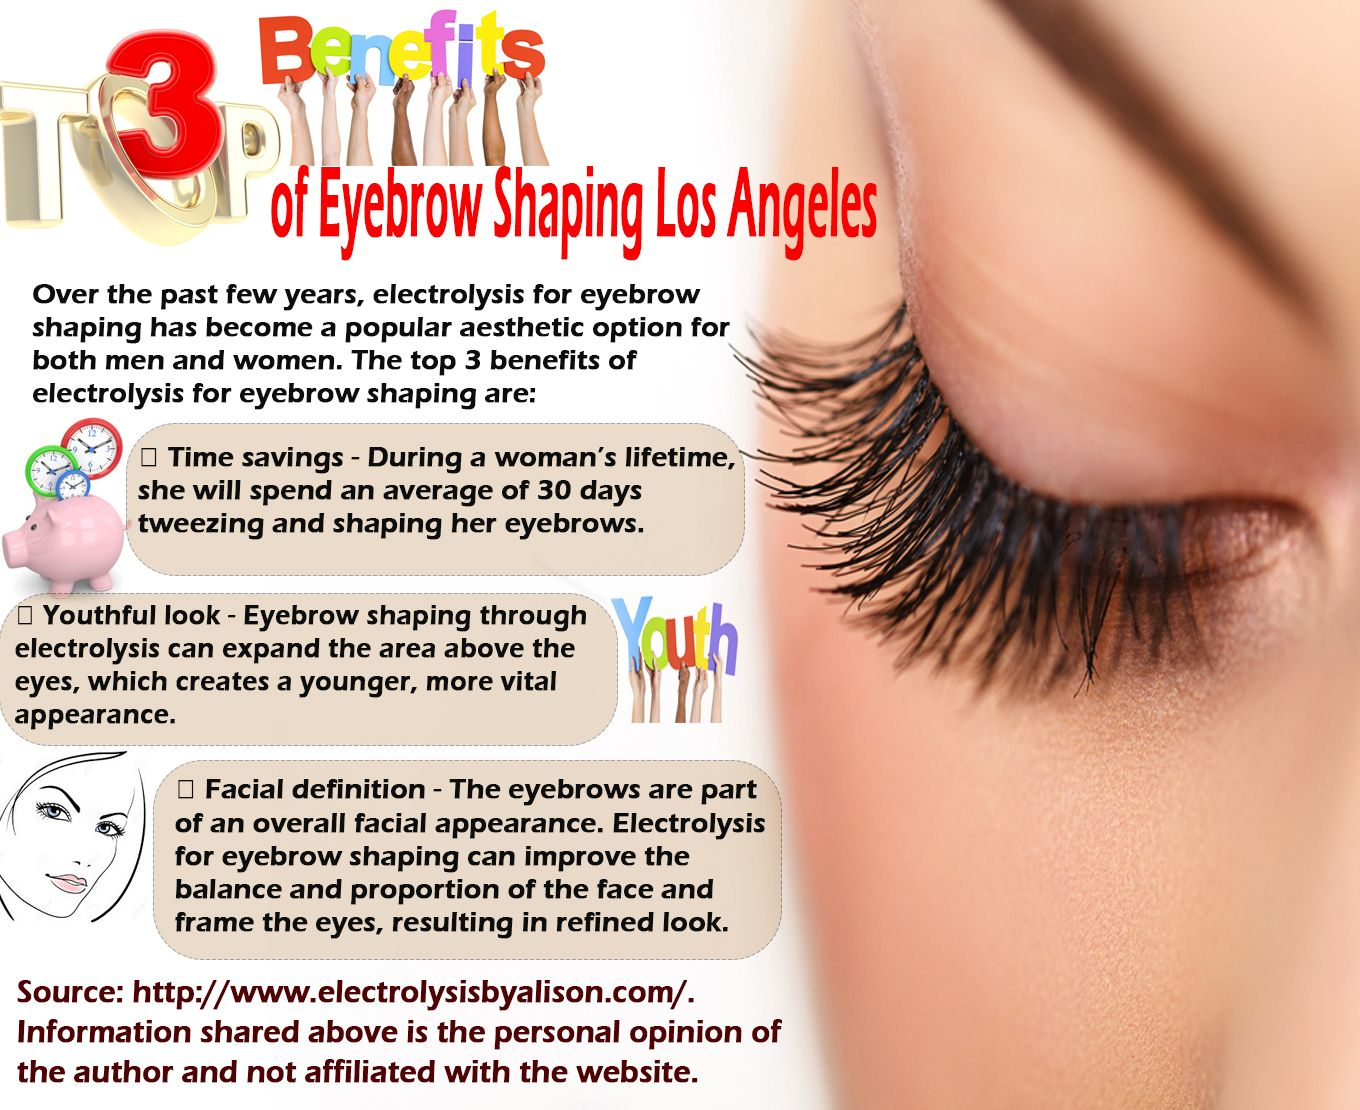 Electrolysis For Eyebrow Shaping Has Become A Popular Aesthetic